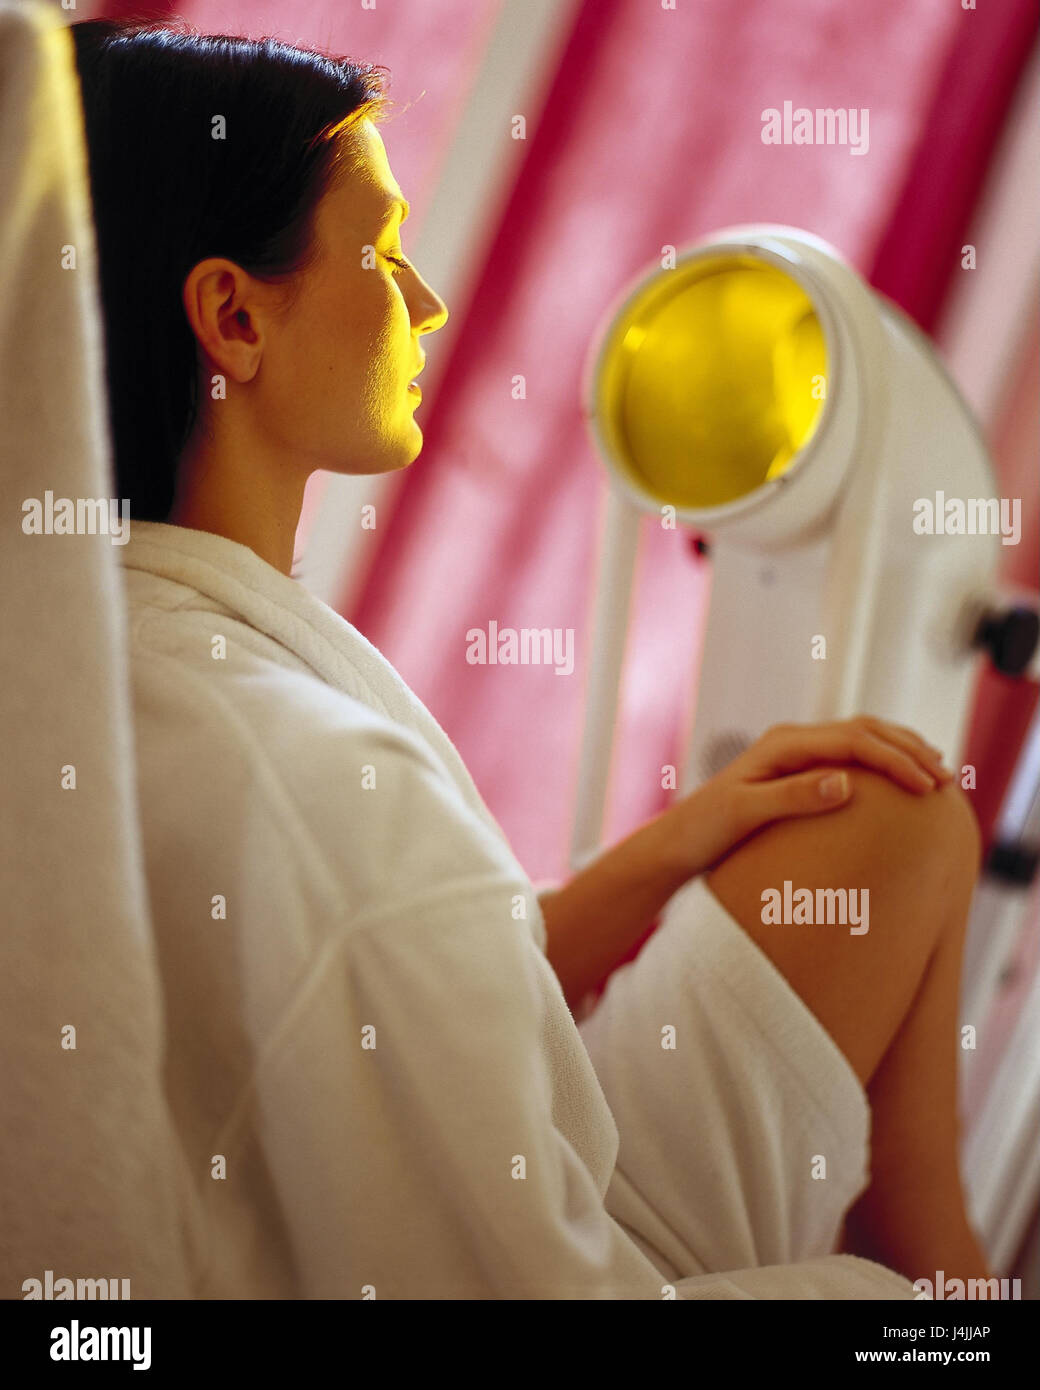 Treatment chair, Bioptron lamp, woman, look, irradiate inside, young, biology light therapy, light therapy, treatment, - Stock Image